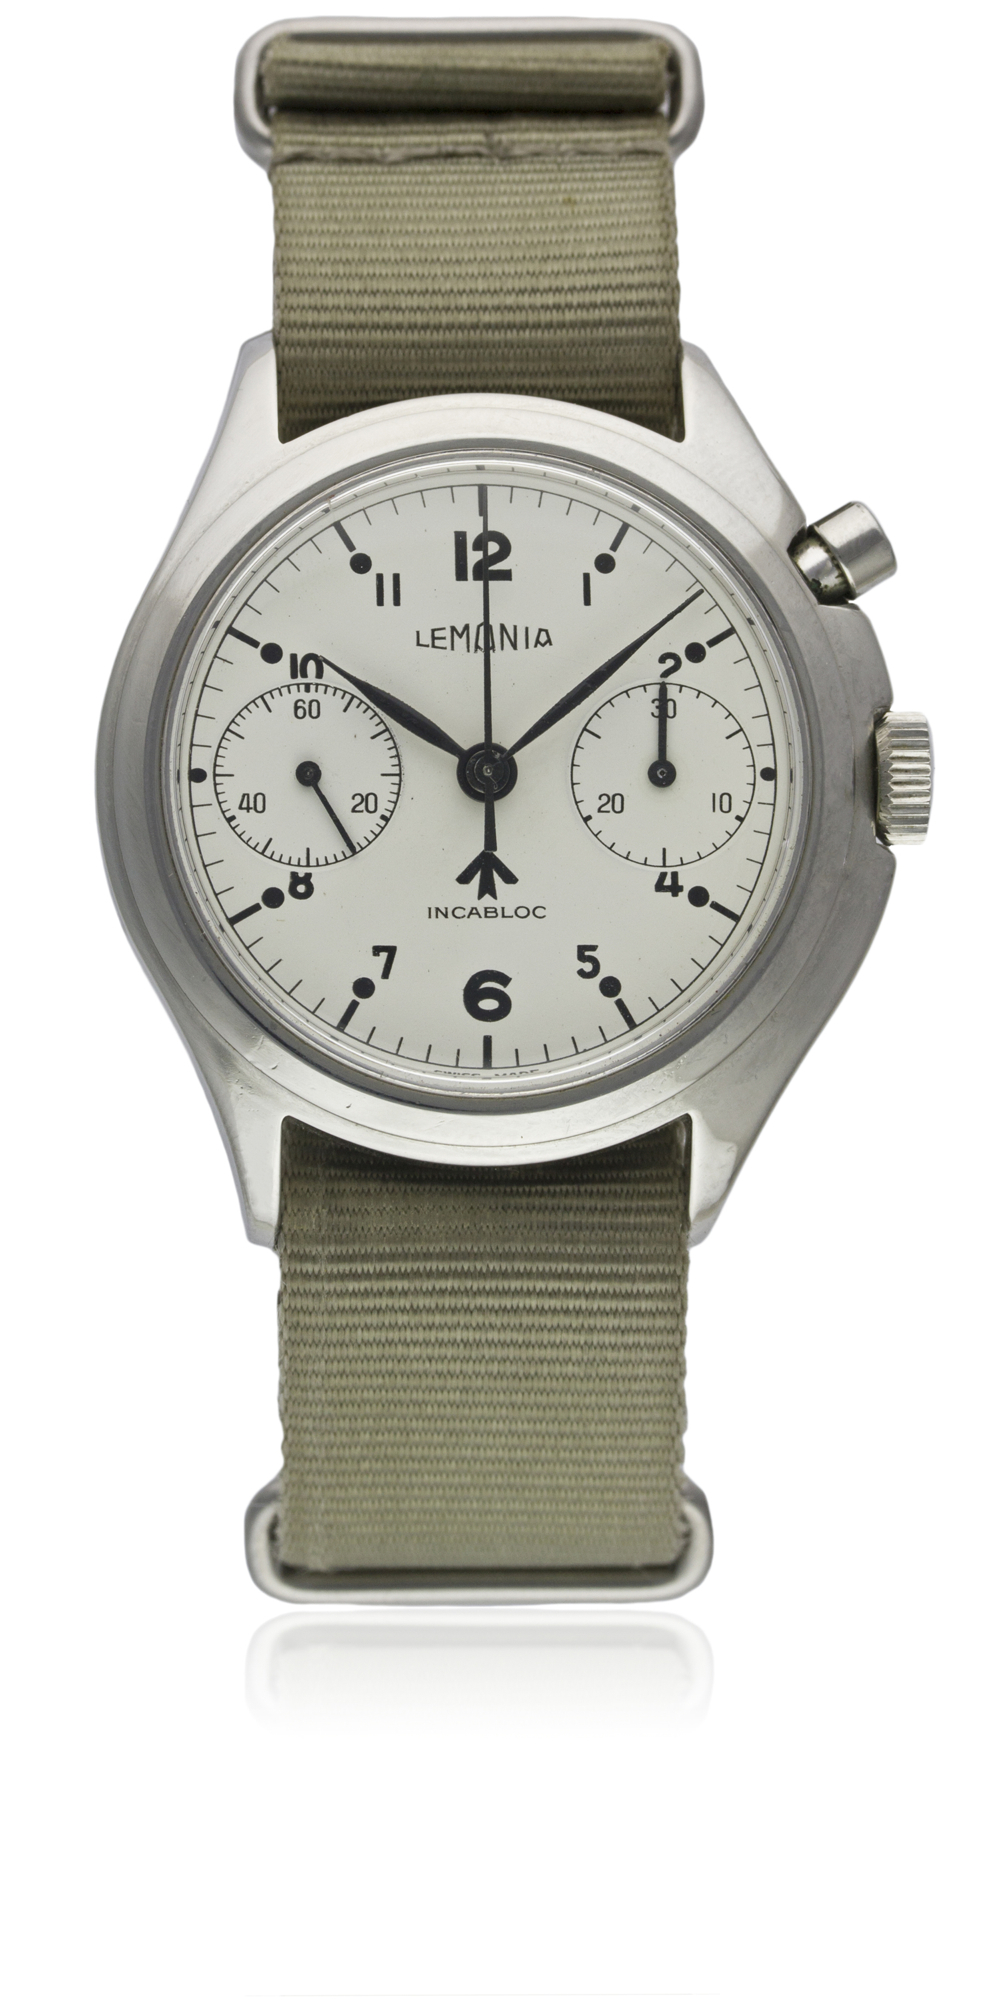 A VERY RARE GENTLEMAN'S STAINLESS STEEL BRITISH MILITARY LEMANIA SINGLE BUTTON ROYAL NAVY NUCLEAR - Image 3 of 10